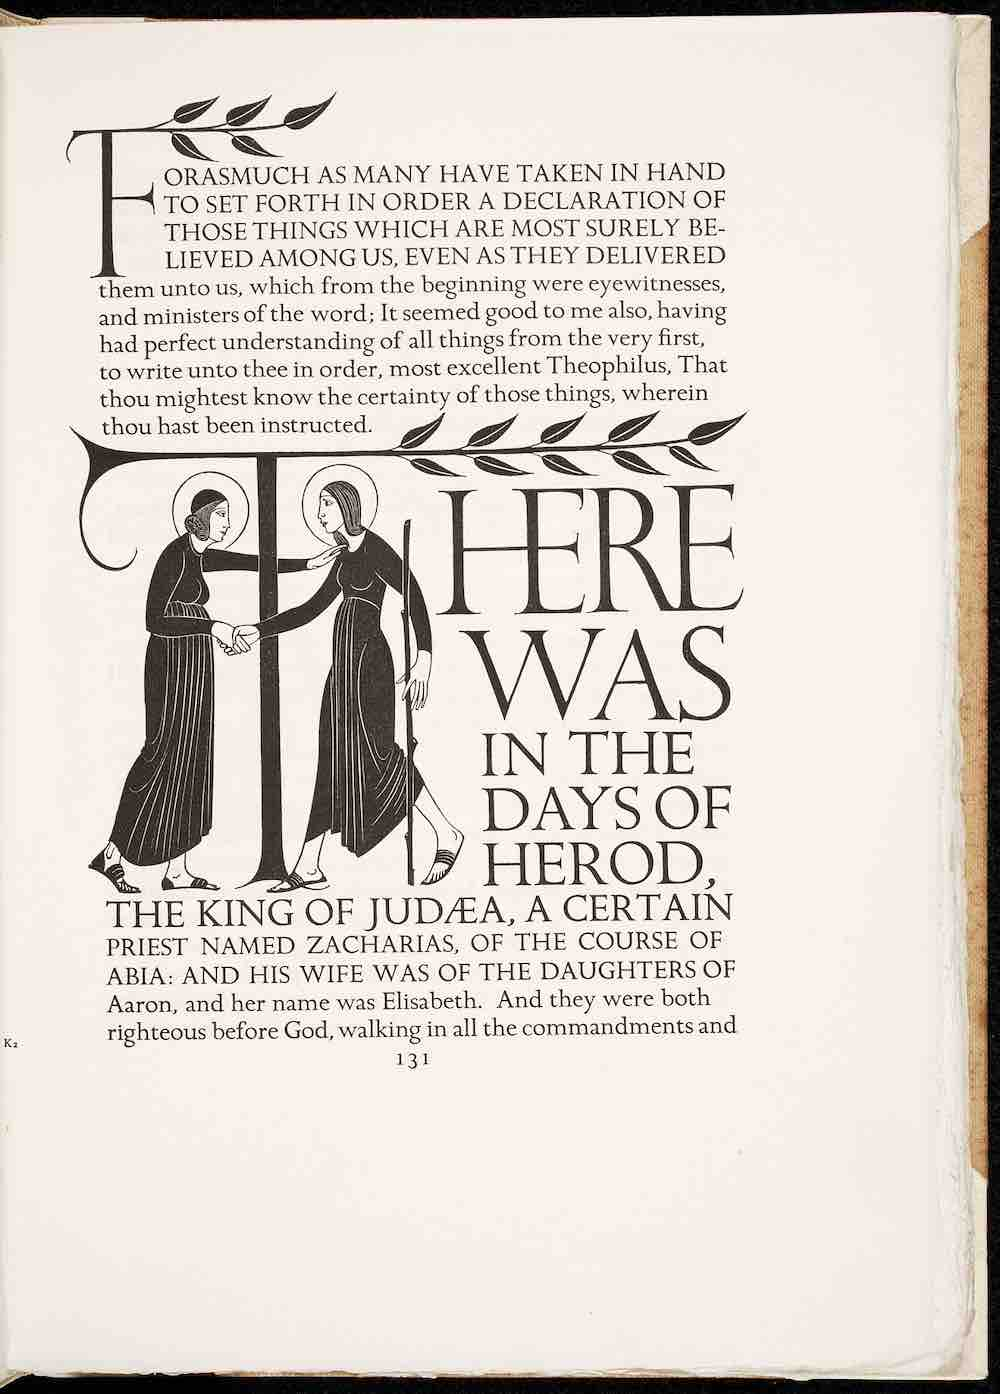 20th-c. fine press book, Eric Gill's The Four Gospels. <a href='https://w3id.org/vhmml/readingRoom/view/519252'>Arca Artium Rare Z232.G6 1931a Oversize</a>